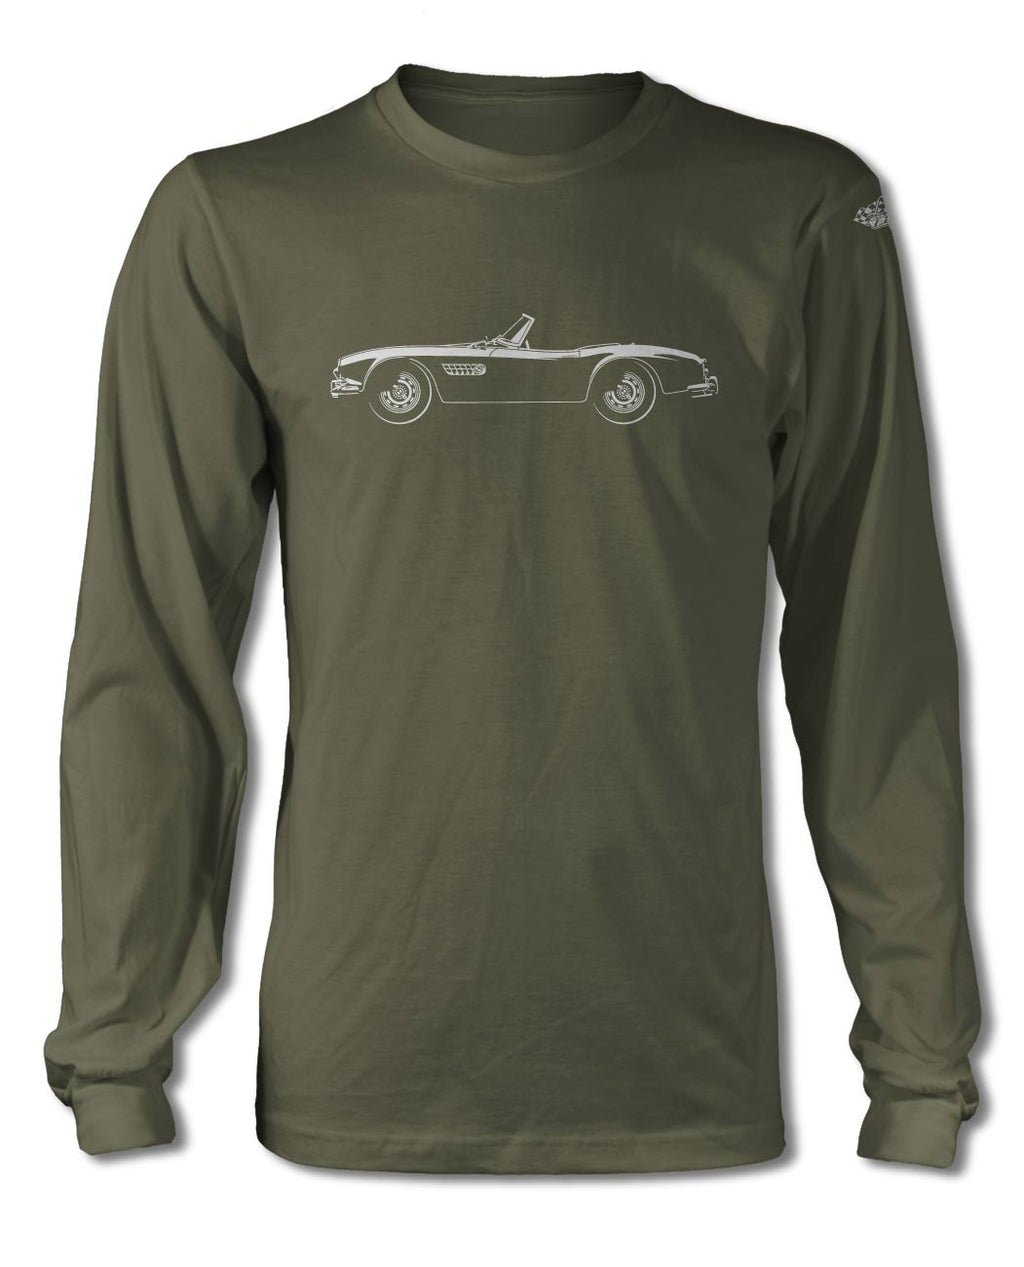 BMW 507 Roadster T-Shirt - Long Sleeves - Side View